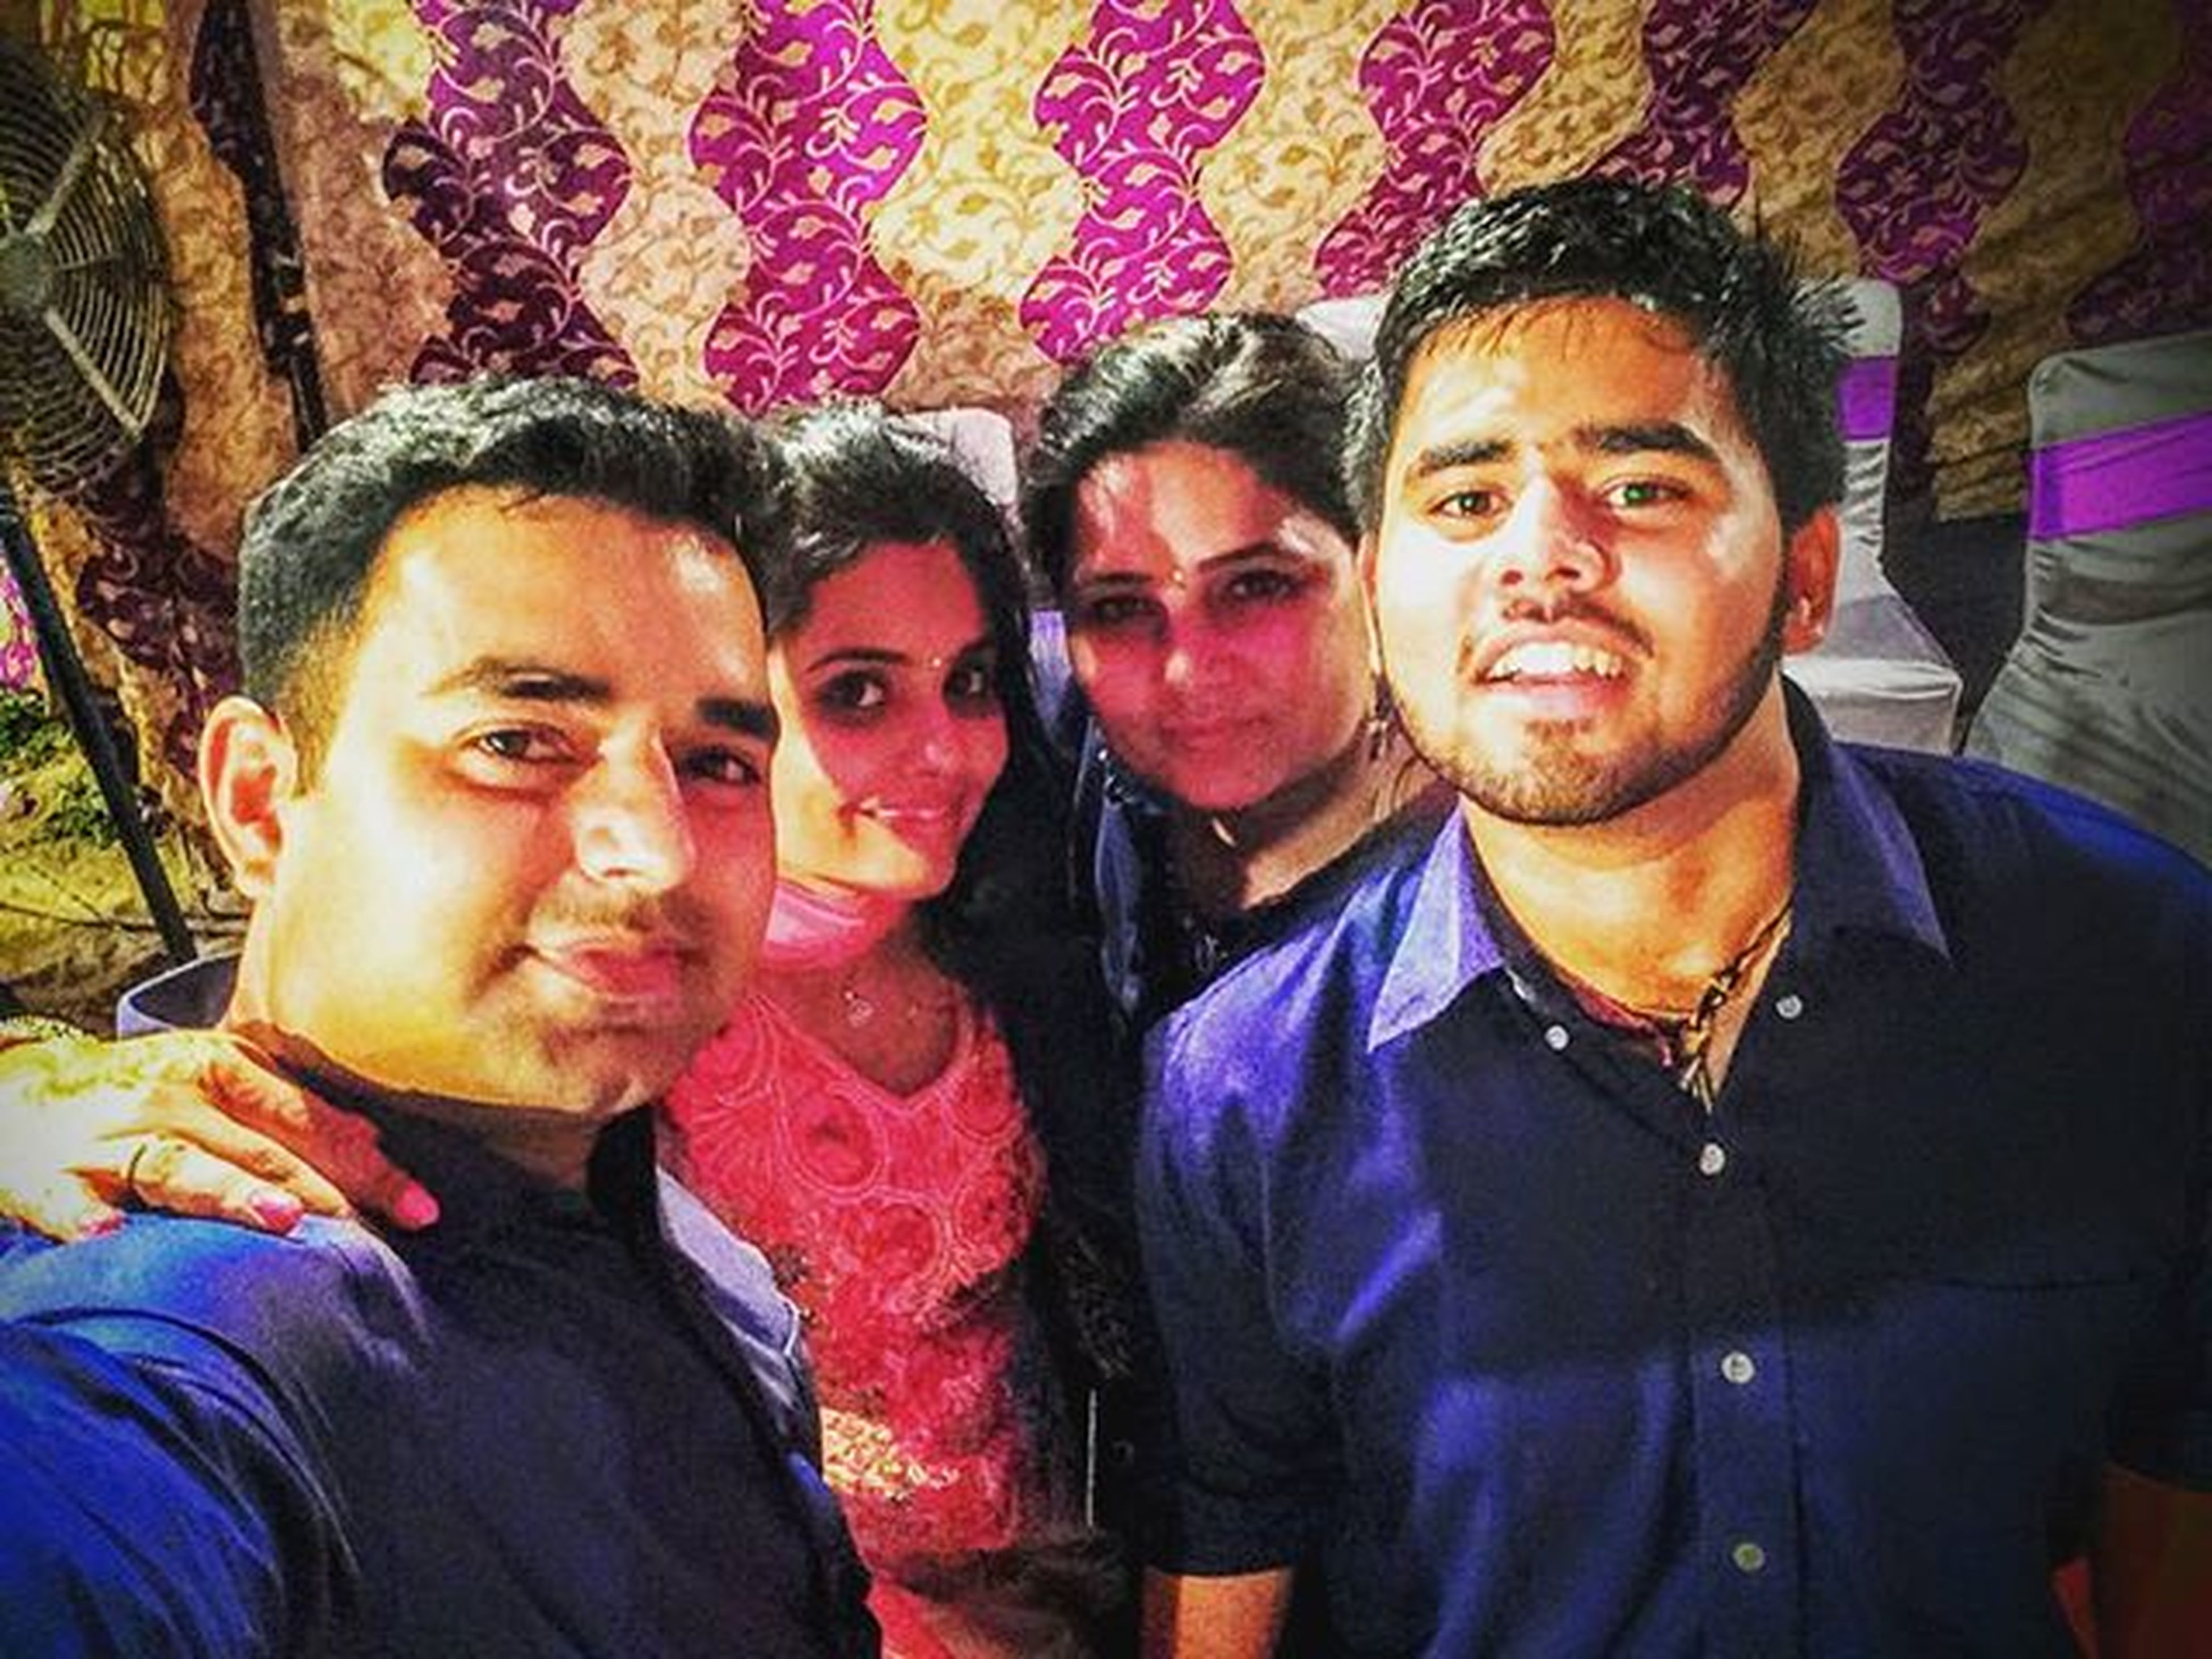 togetherness, lifestyles, bonding, person, leisure activity, portrait, love, looking at camera, casual clothing, smiling, happiness, friendship, front view, young adult, young men, family, sibling, sister